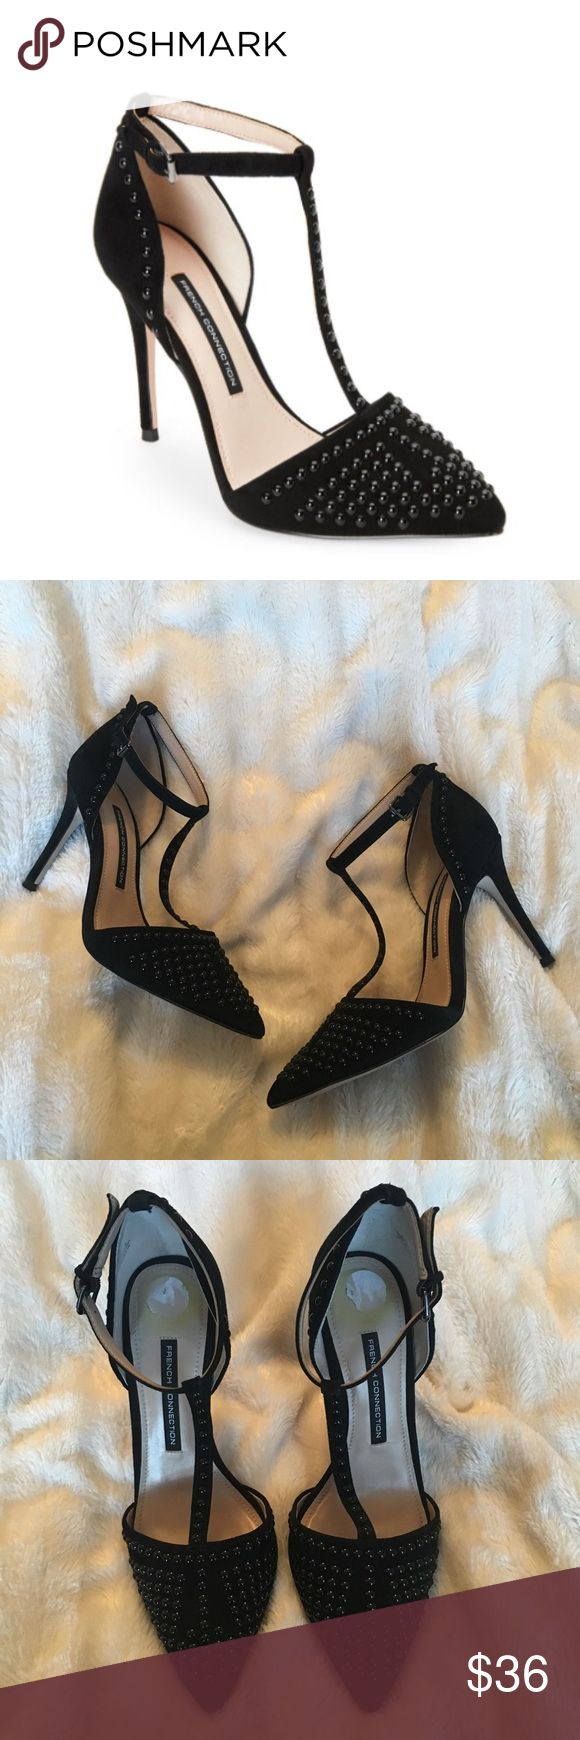 """French Connection Black """"Elanah"""" Studded Heels In good condition, only worn a handful of times. Has some writing on the bottom and fragments of the size sticker where your heels goes. Super chic shoes, perfect for spicing up an outfit. Suede upper. French Connection Shoes Heels"""